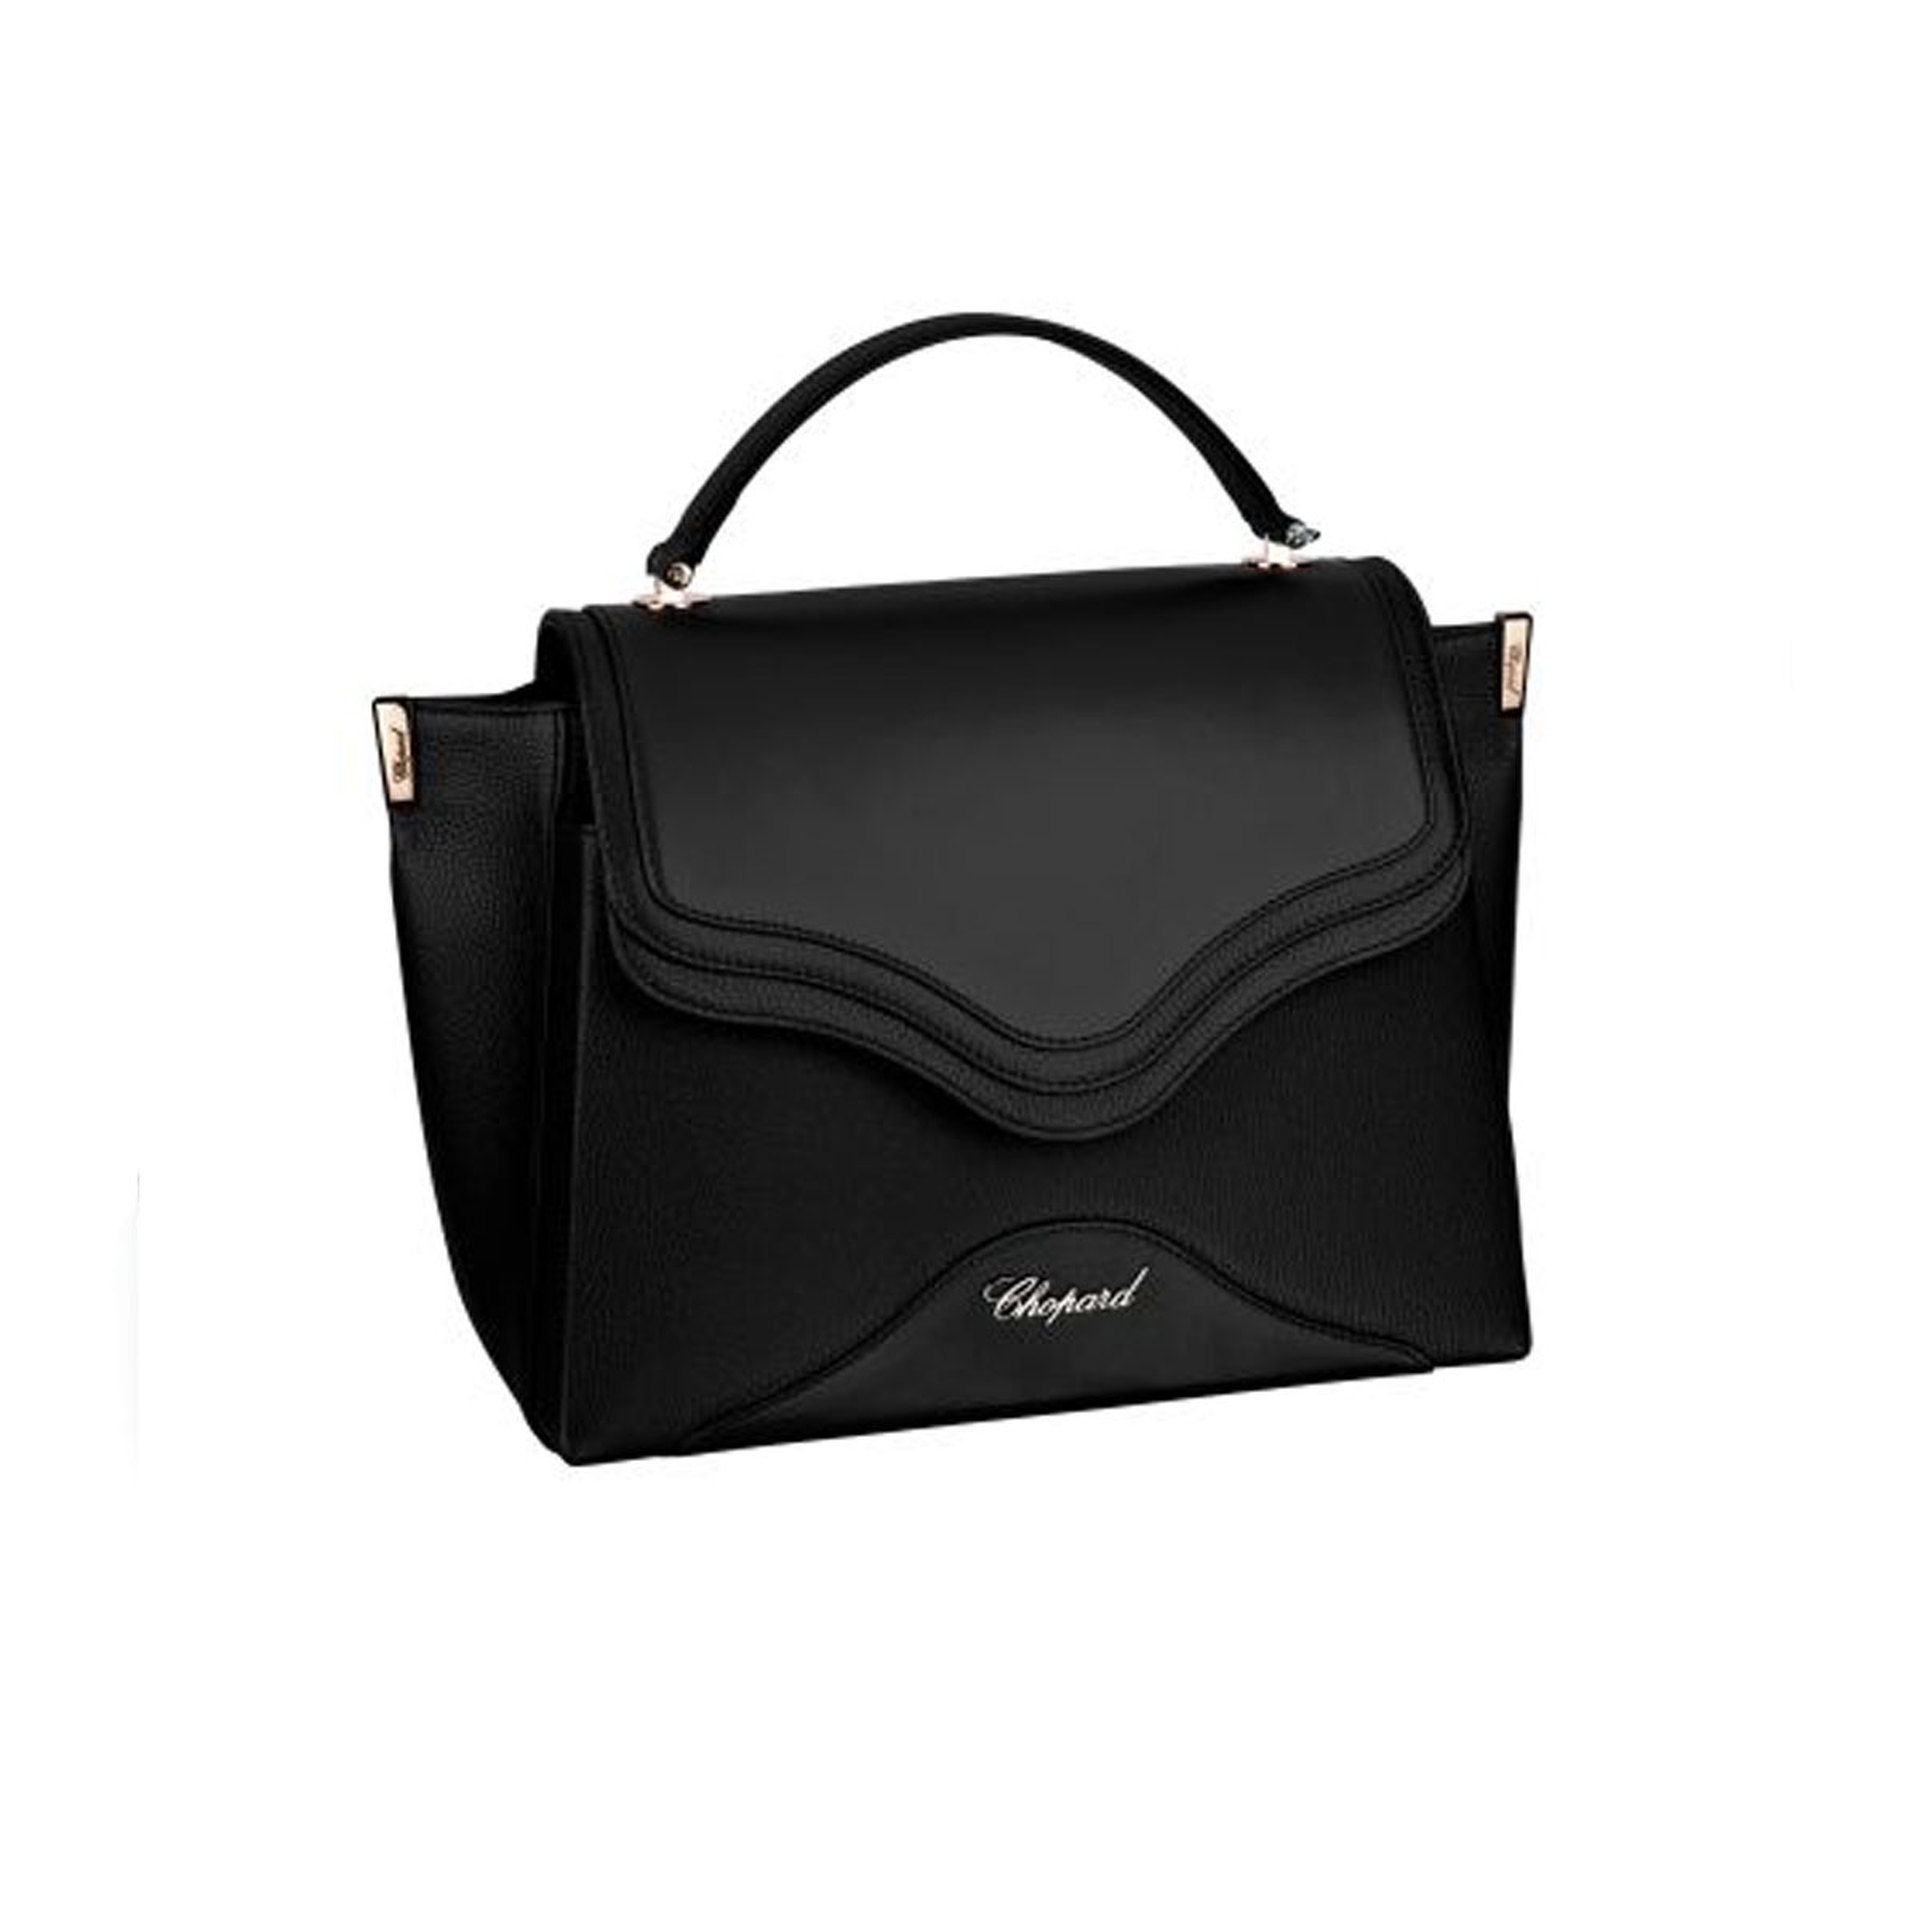 Chopard Lady Imperiale Leather Handbag